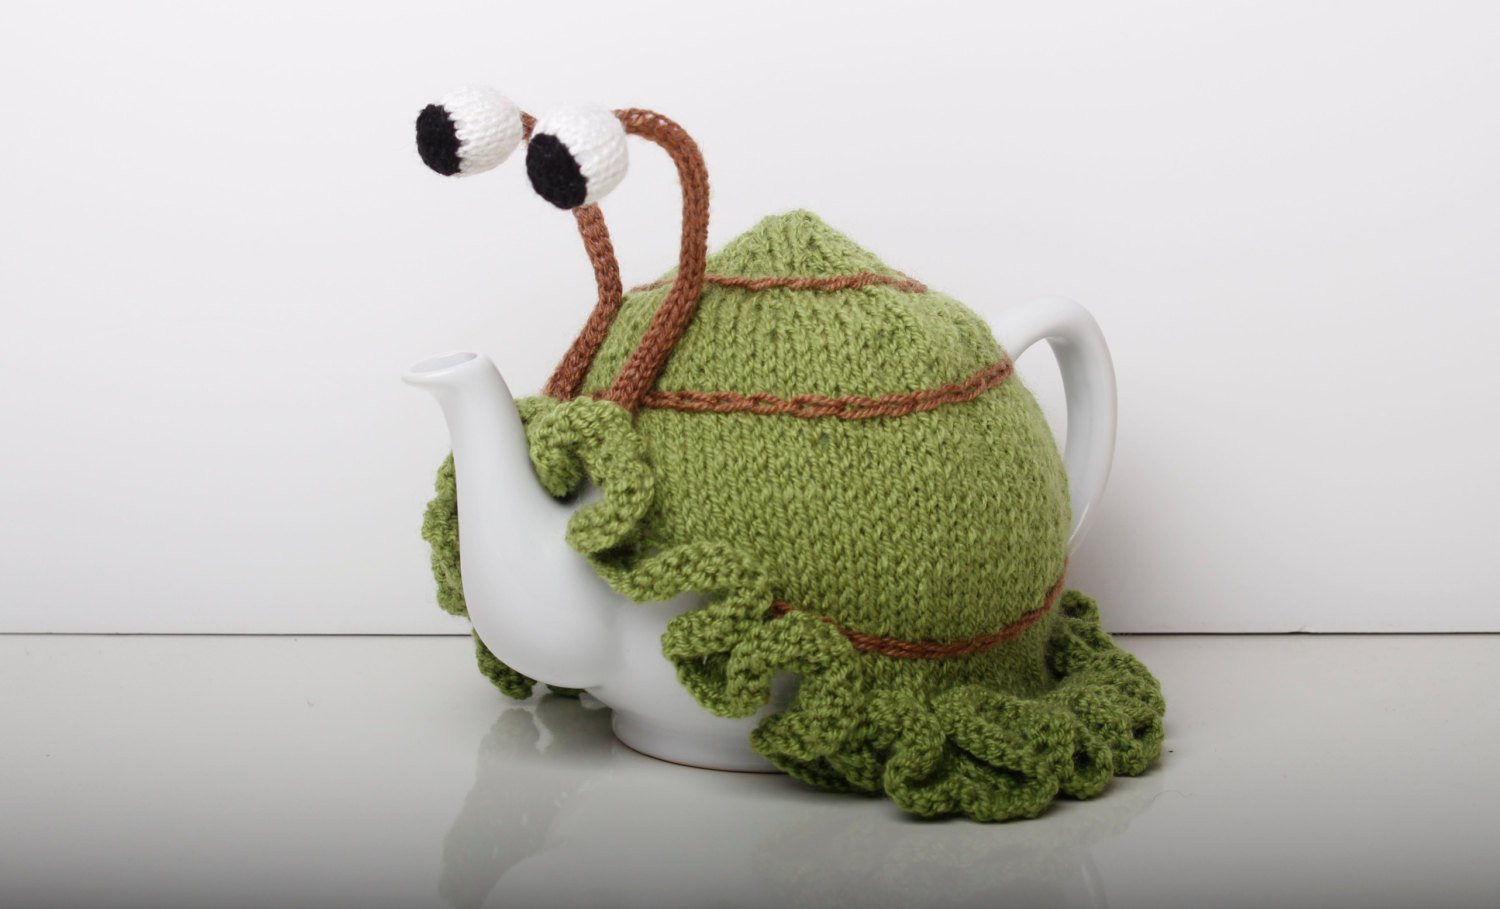 Tea Cosy Best Of Knitted Green Snail Tea Cosy with Frilly Bottom Washable Fits Of Beautiful 41 Pics Tea Cosy